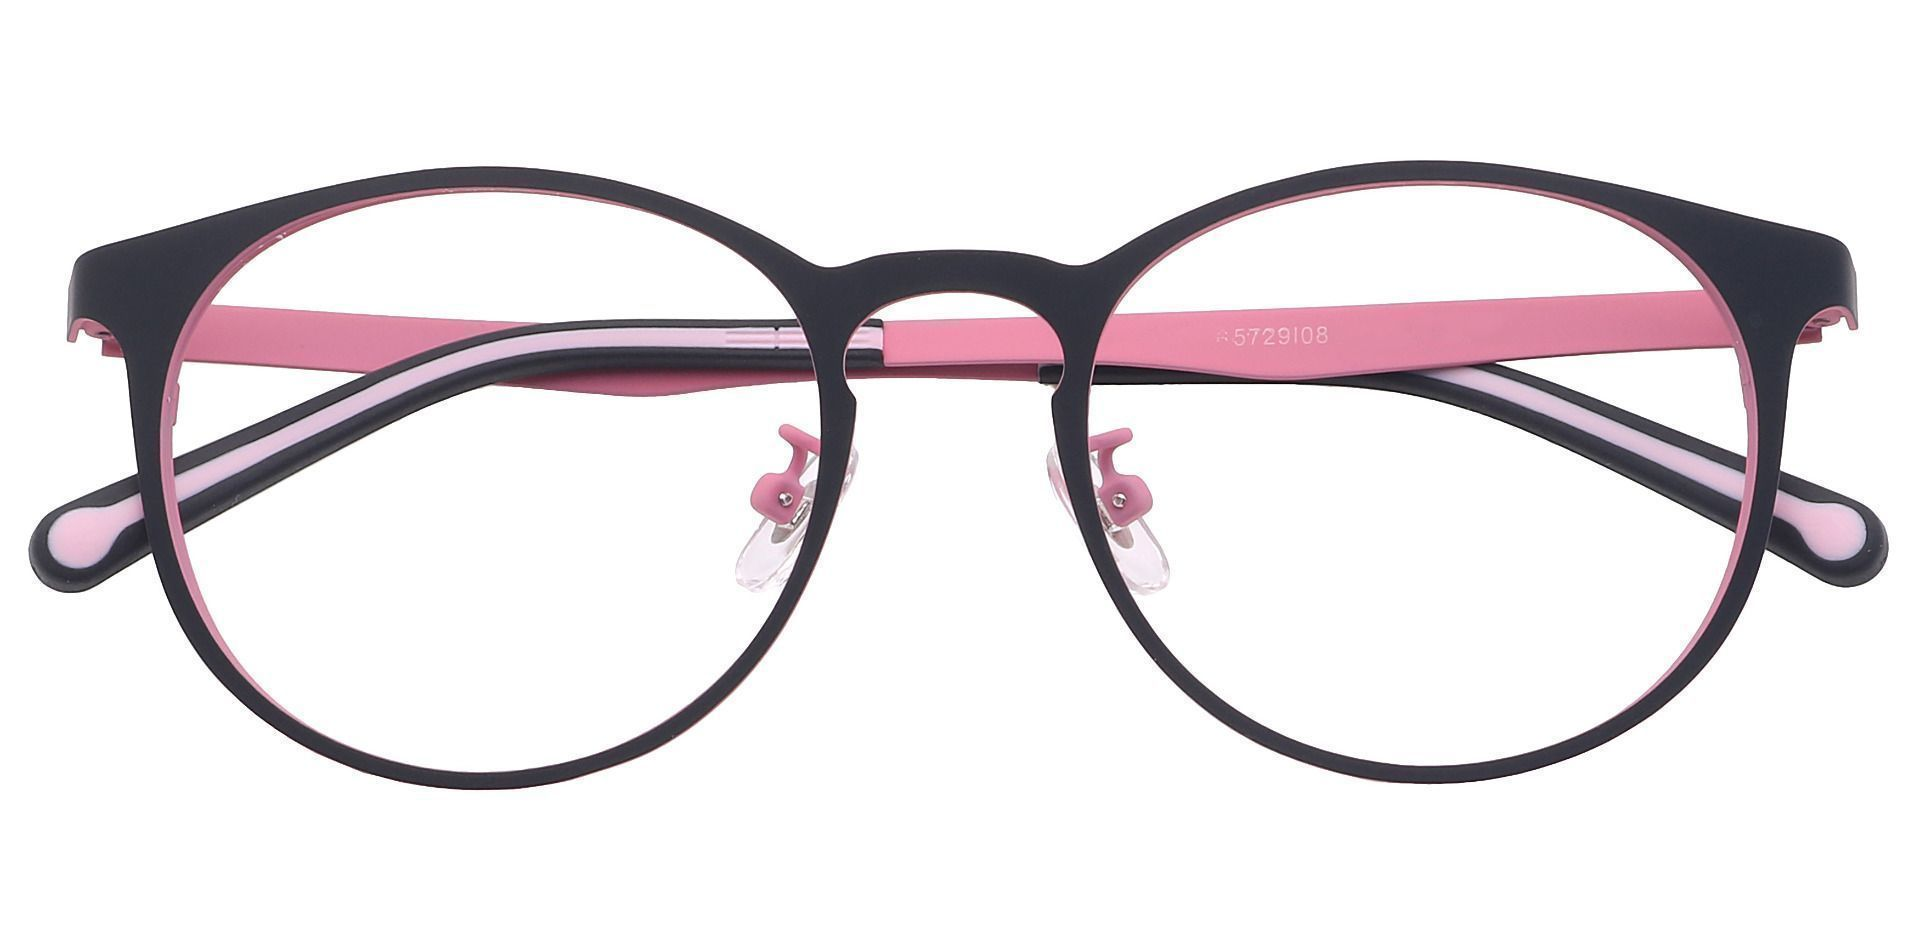 Wallace Oval Lined Bifocal Glasses - Pink